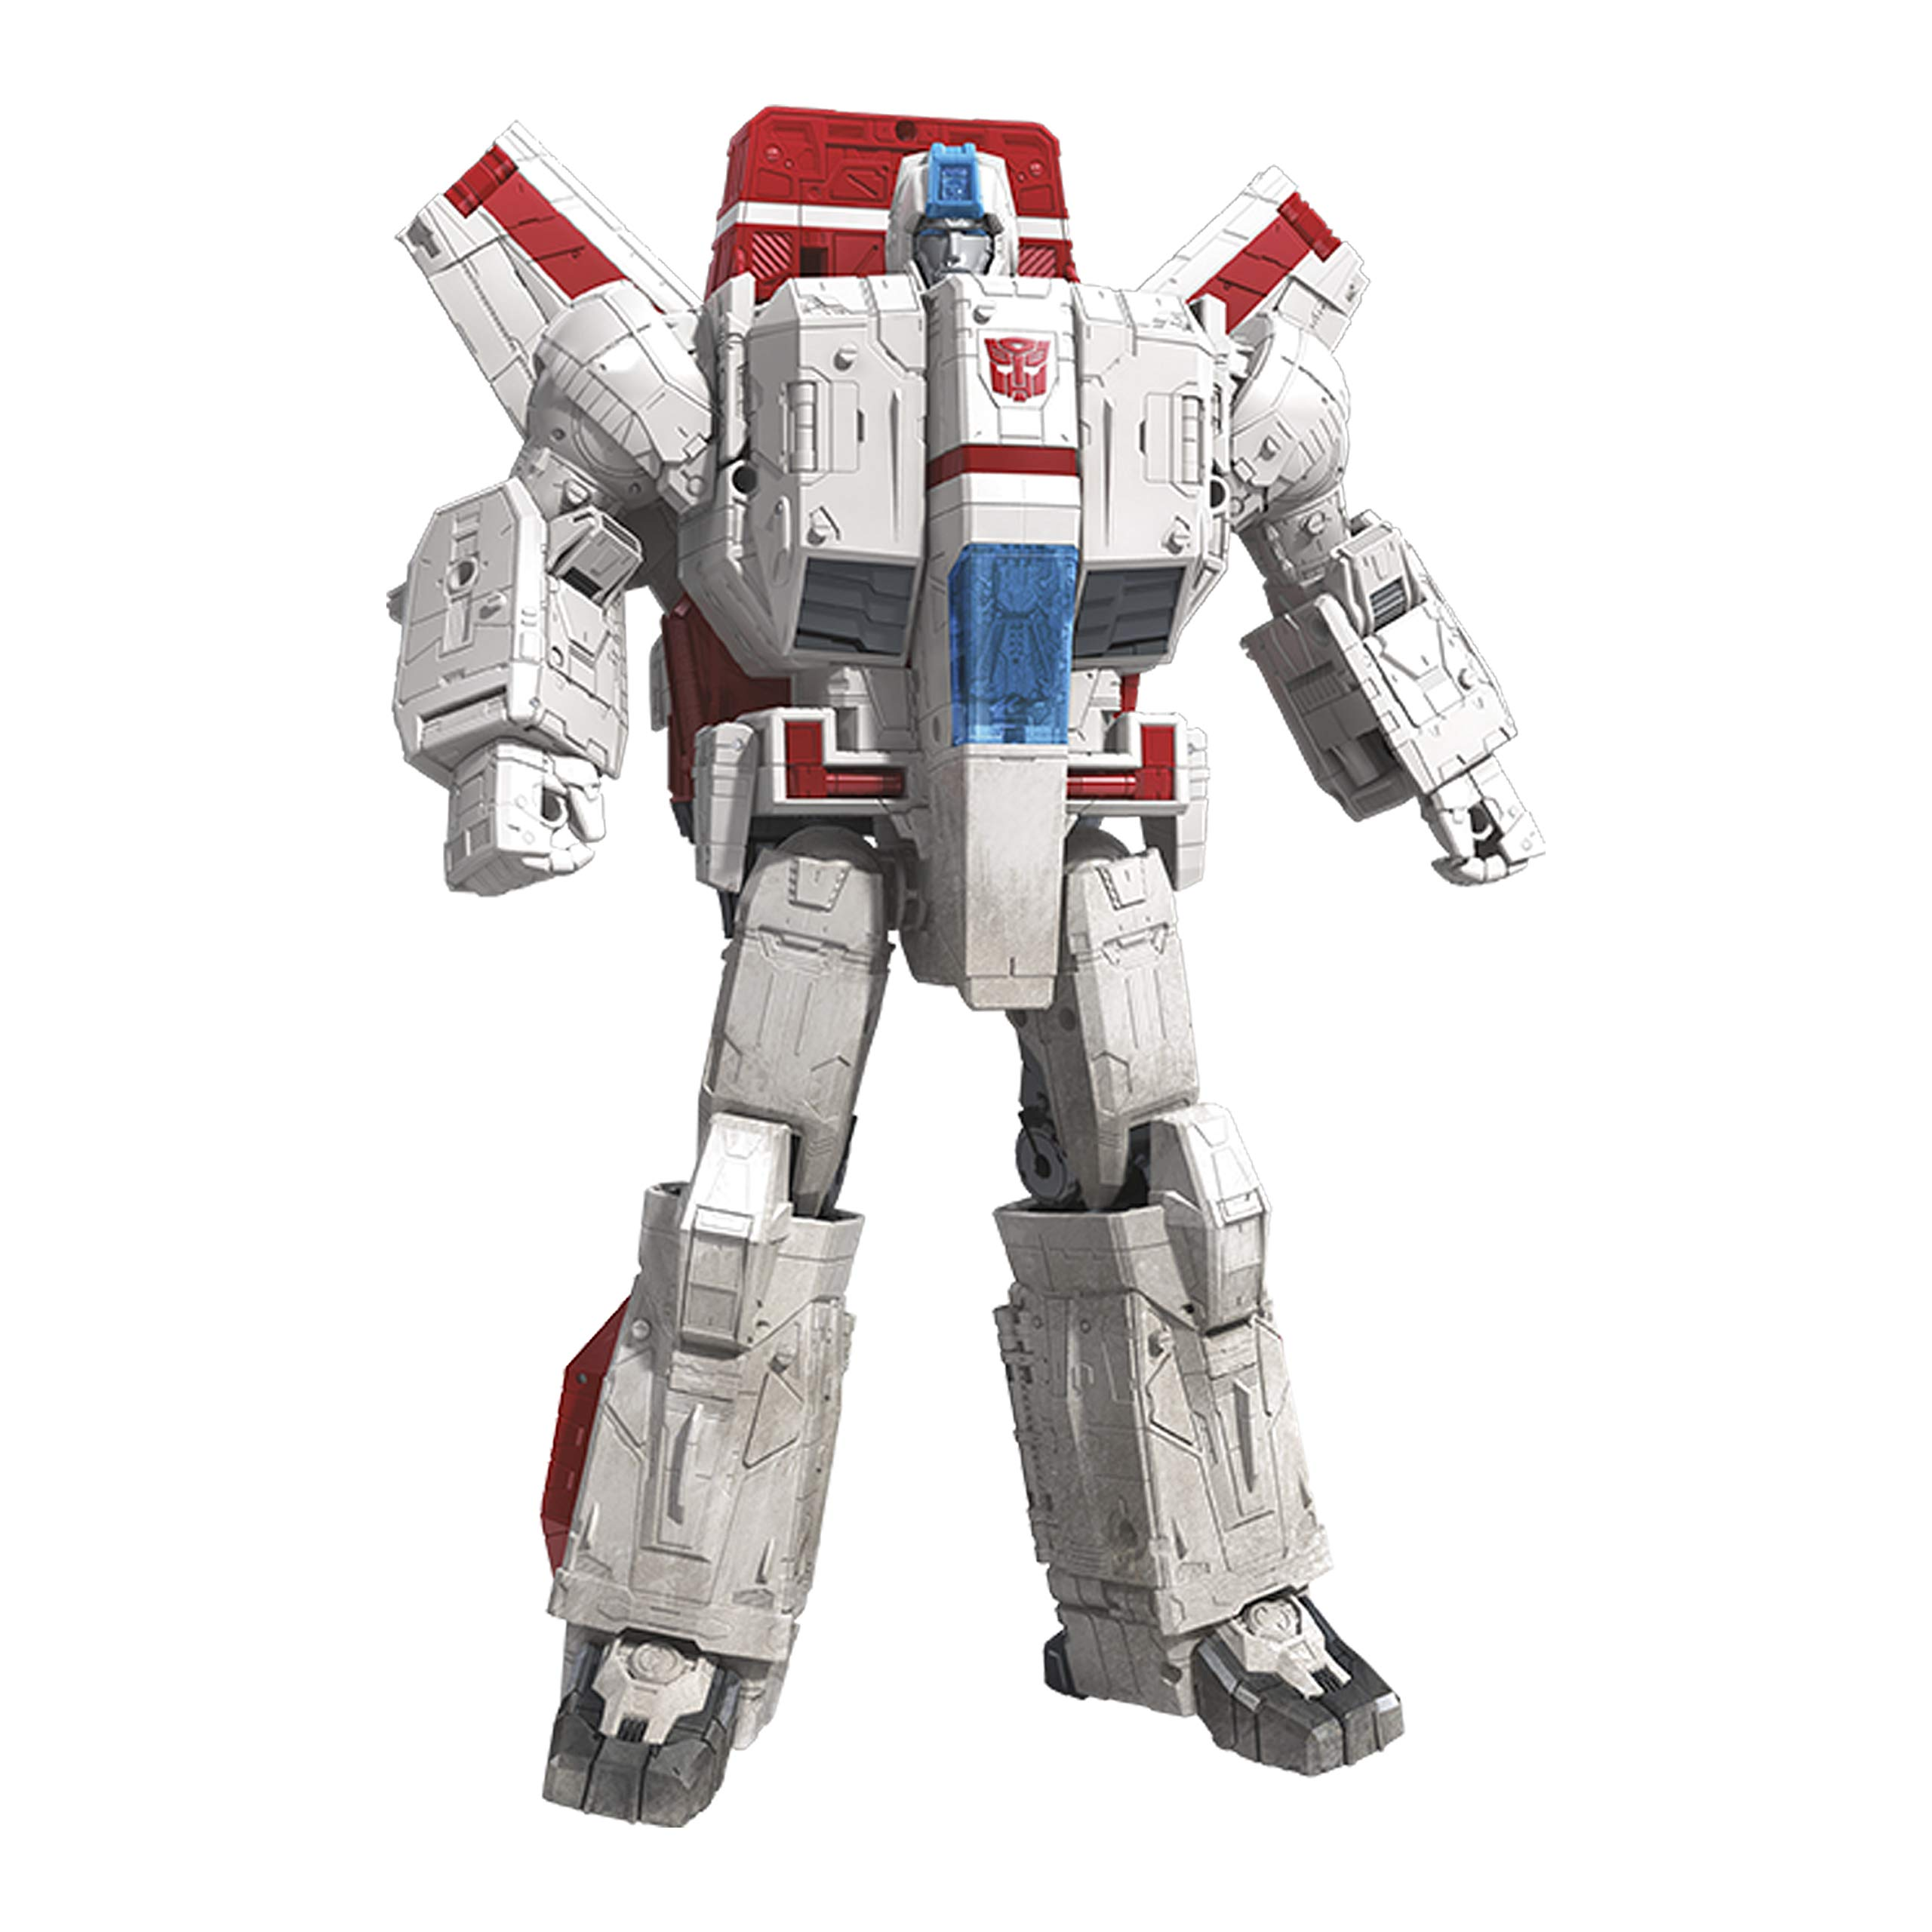 Transformers Toys Generations War for Cybertron Commander Wfc-S28 Jetfire Action Figure - Siege Chapter - Adults & Kids Ages 8 & Up, 11'' by Transformers (Image #1)